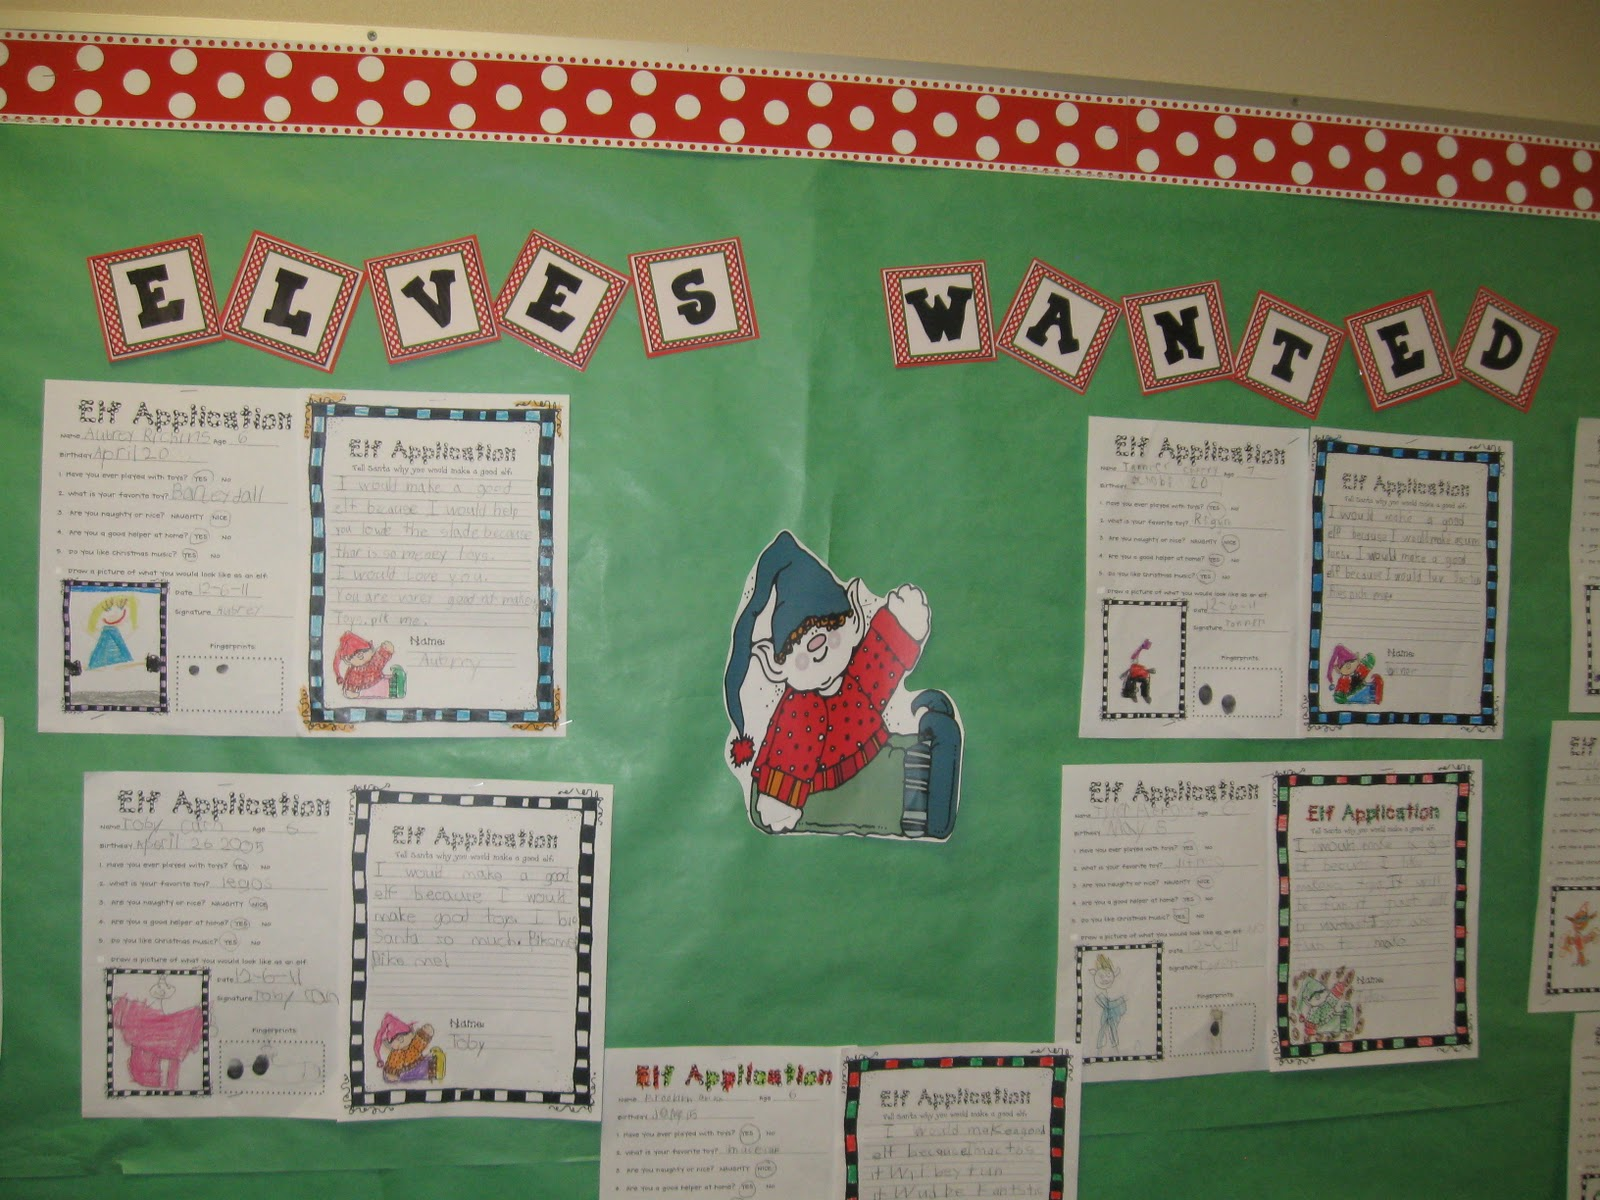 What the Teacher Wants!: Elves wanted!